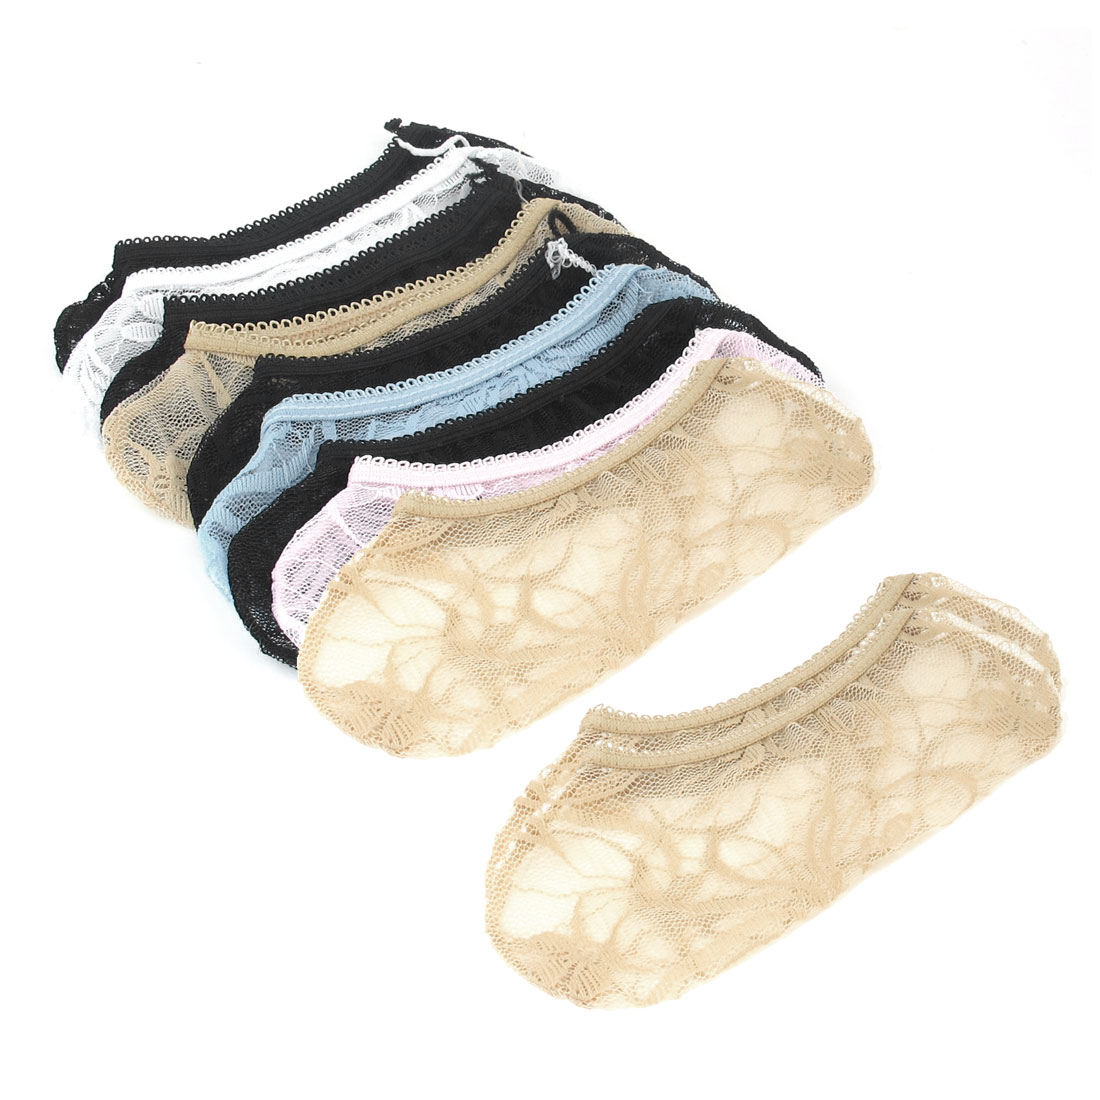 10 Pairs Assorted Color Lace Mesh Low Cut Elastic Cuff Boat Socks for Women